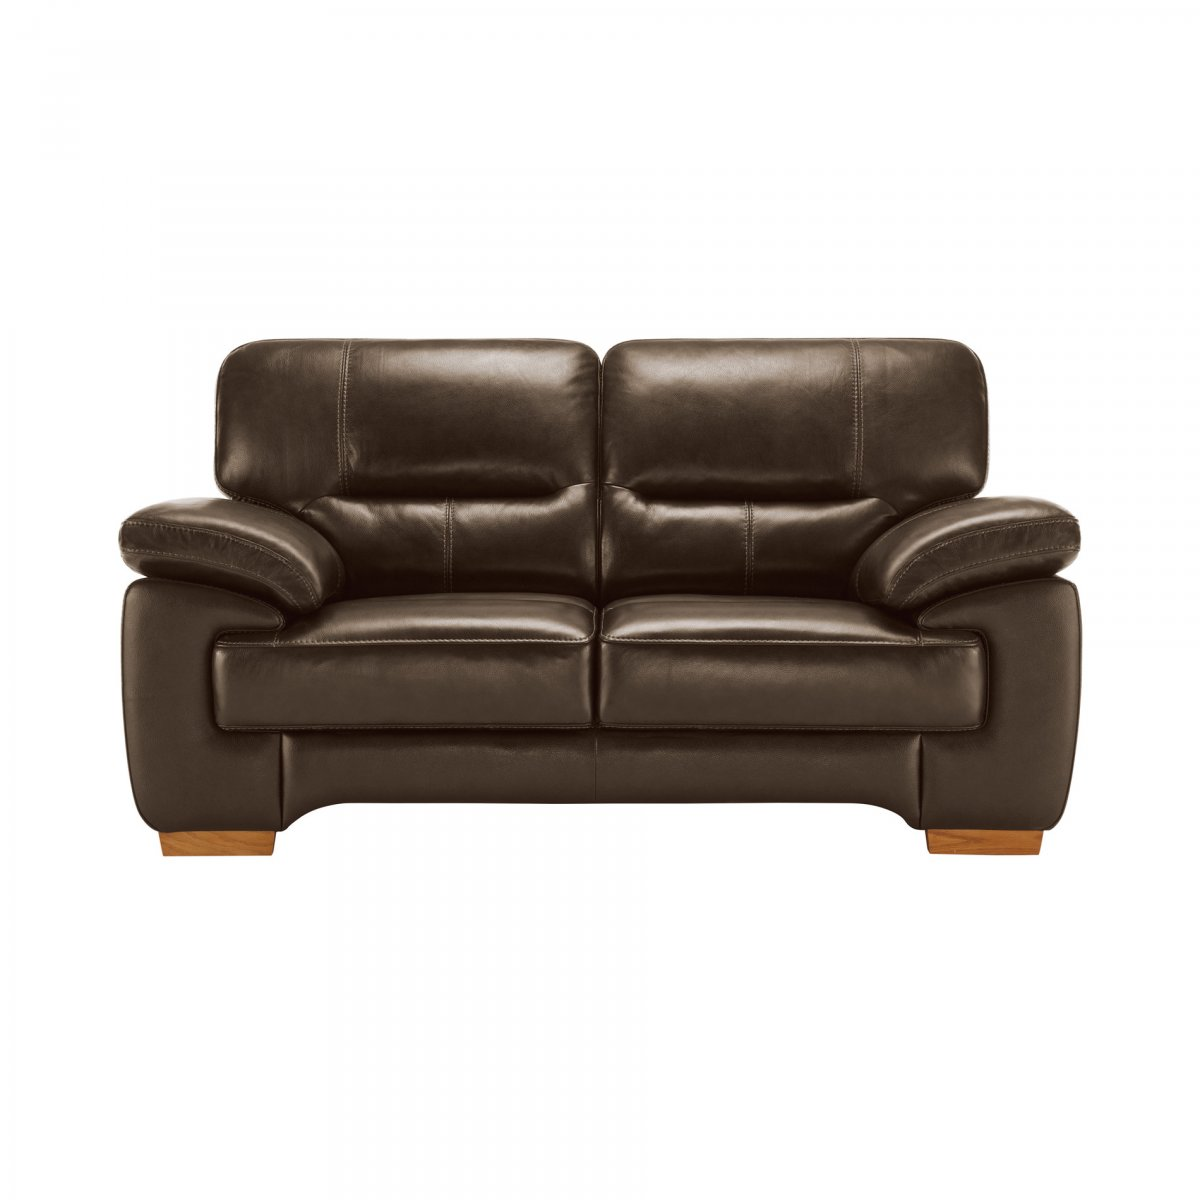 clayton 2 seater sofa in light brown leather oak. Black Bedroom Furniture Sets. Home Design Ideas